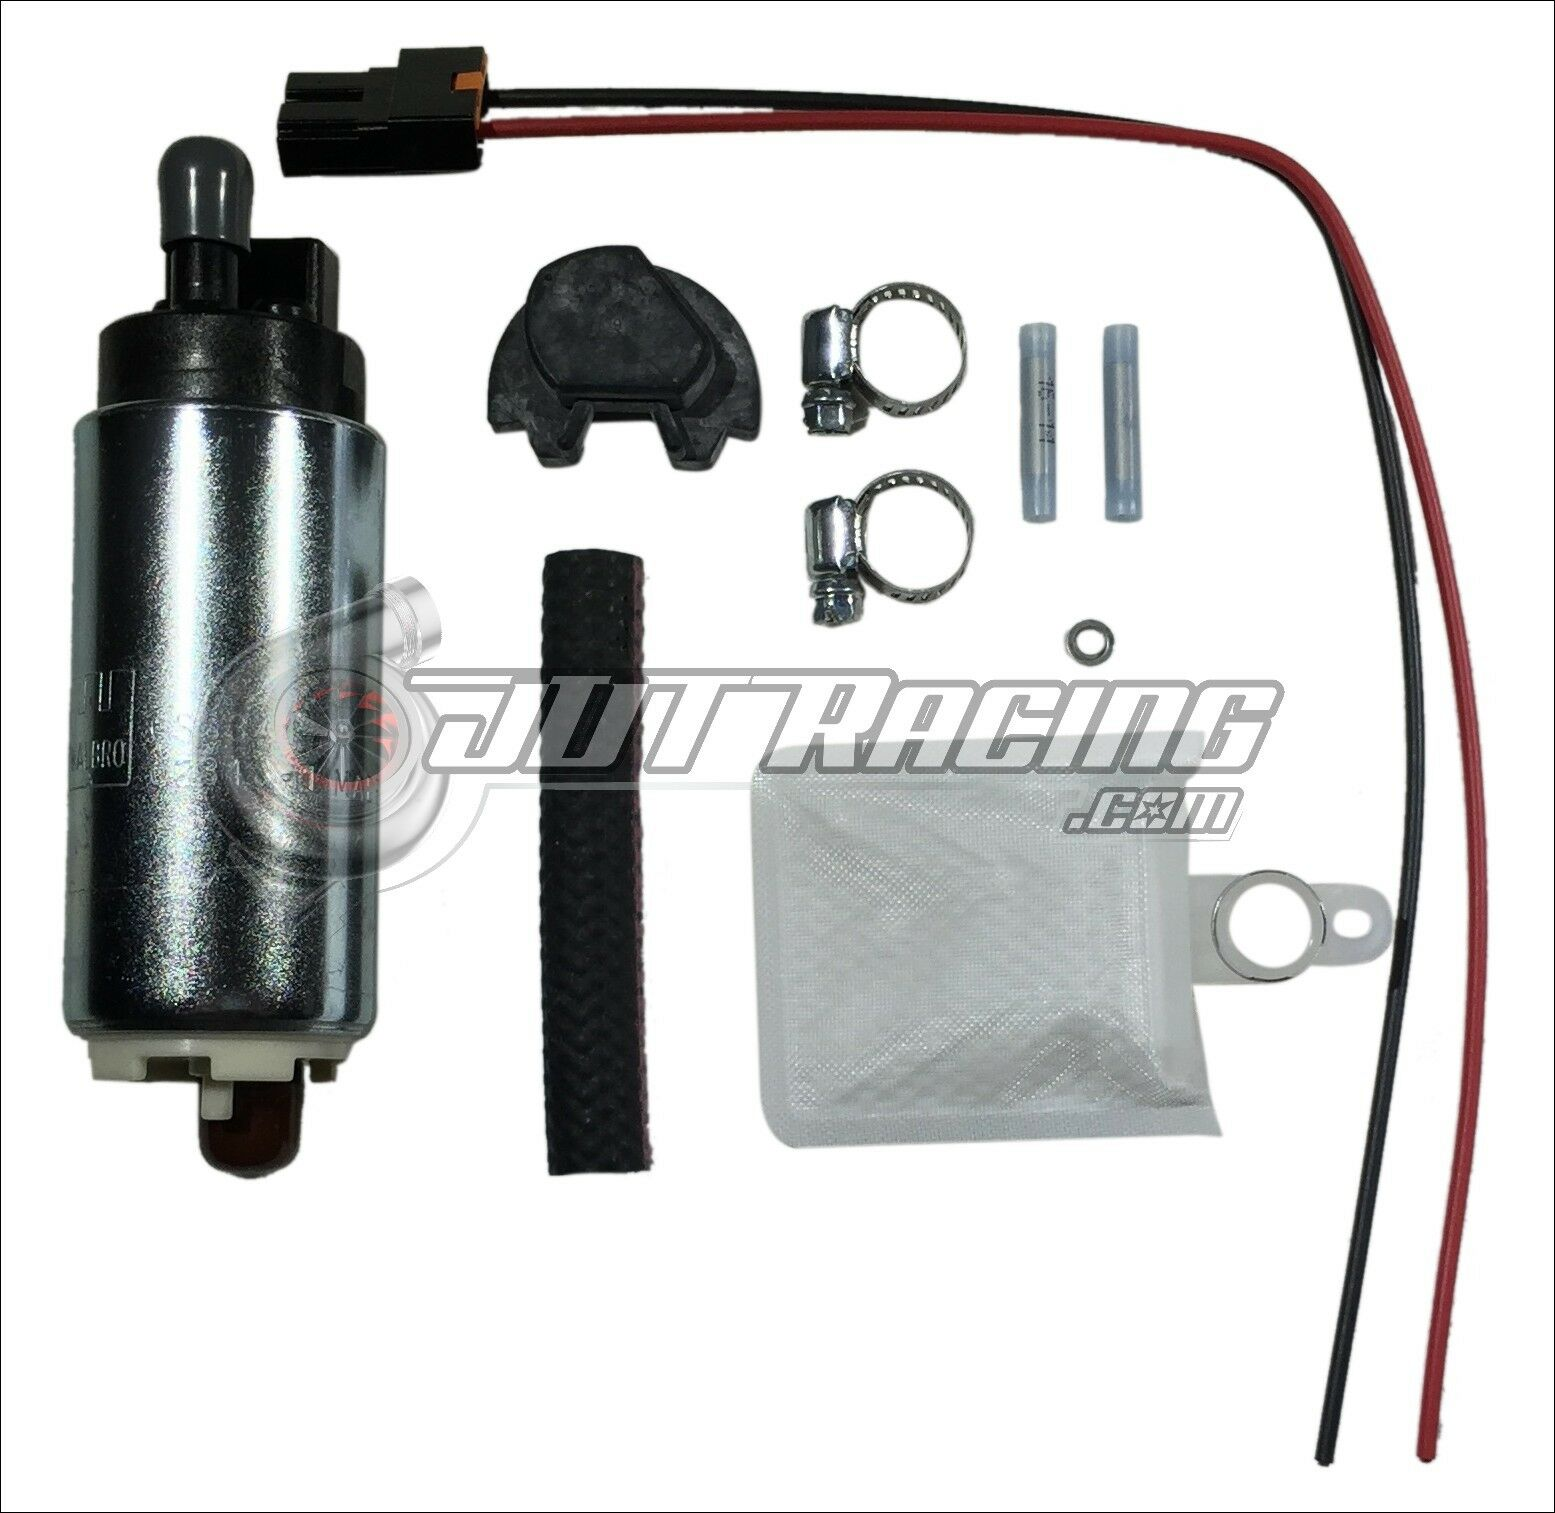 WALBRO FUEL PUMP INSTALL KIT FOR 1989-1998 NISSAN 240SX PART# 400-766